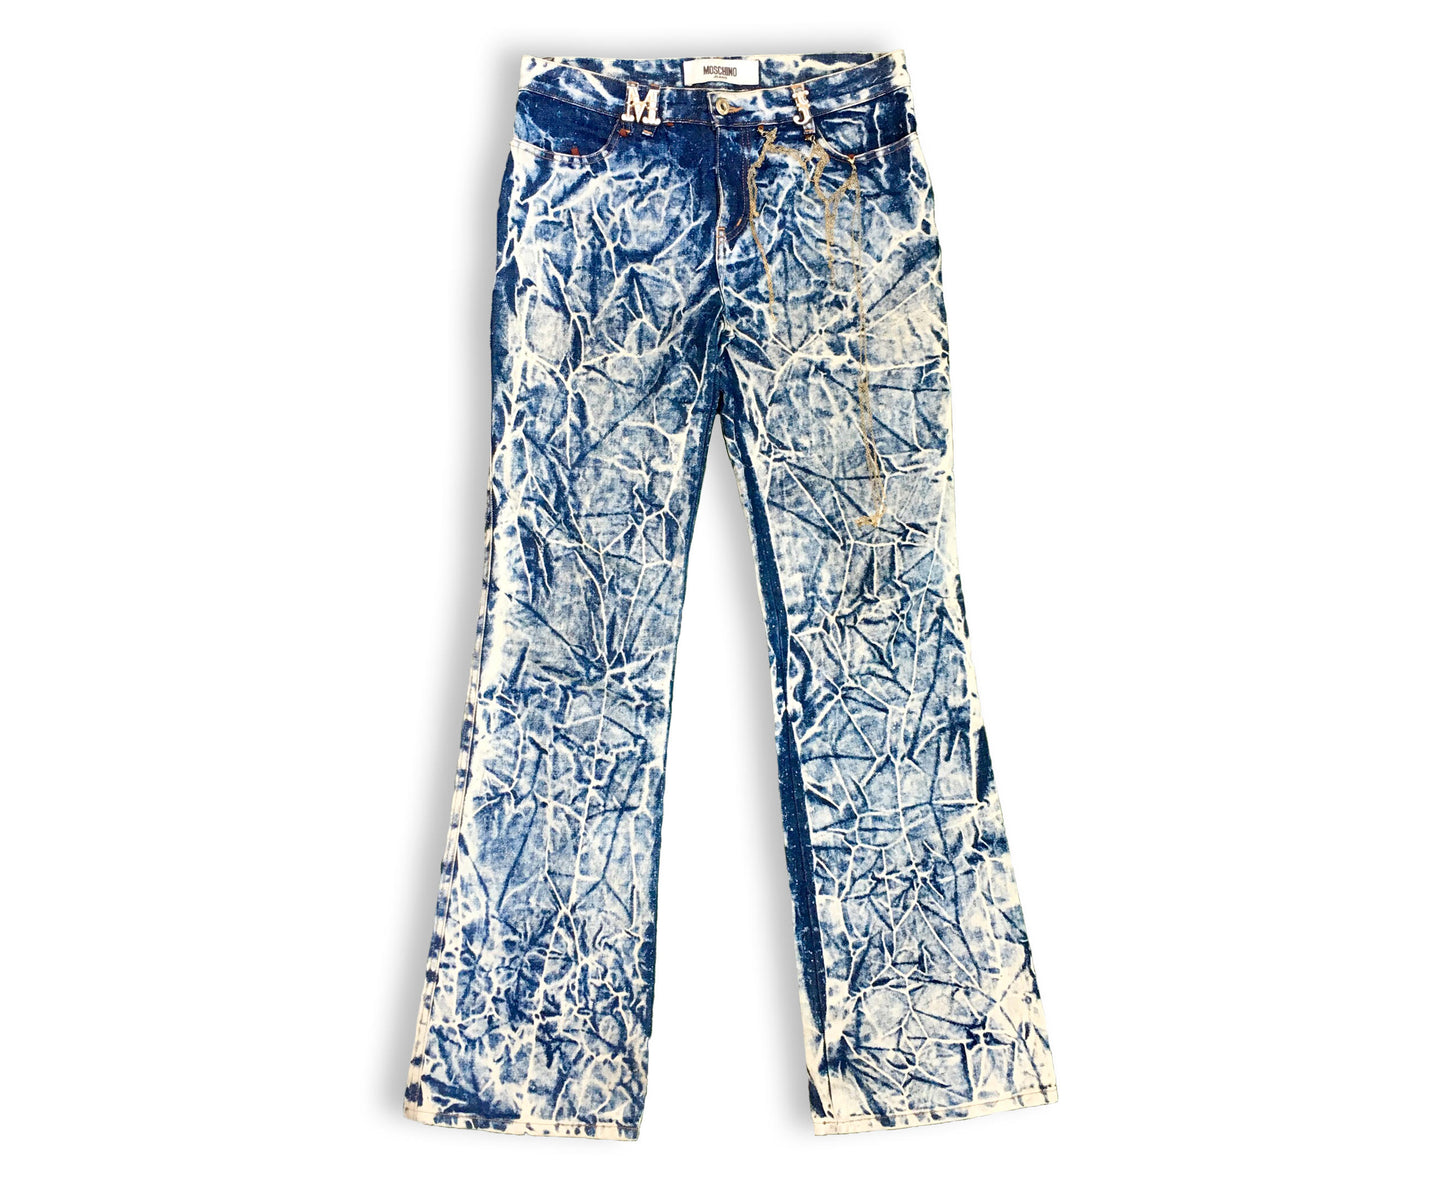 Vintage Moschino Womens Jeans